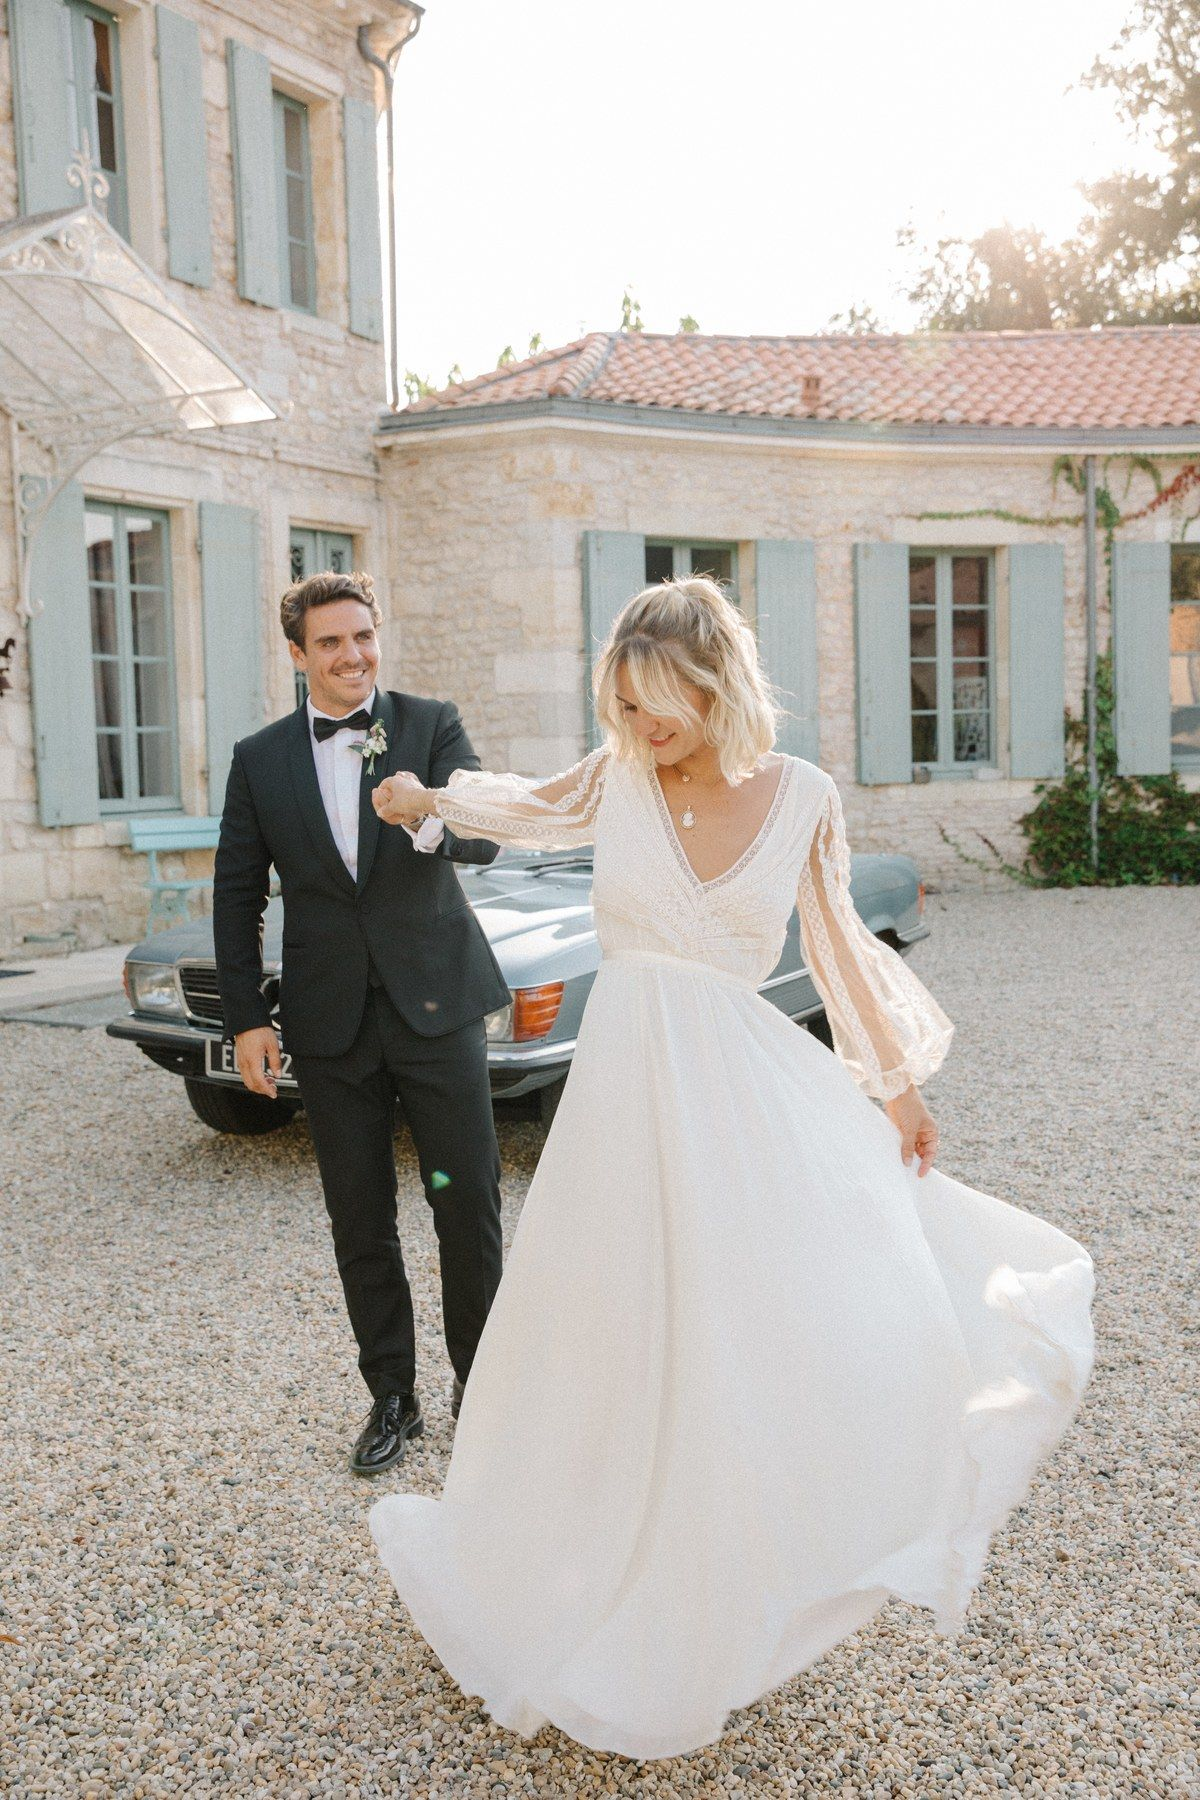 An Influencer S Relaxed French Wedding Near Bordeaux French Wedding Dress Relaxed Wedding Dress French Wedding